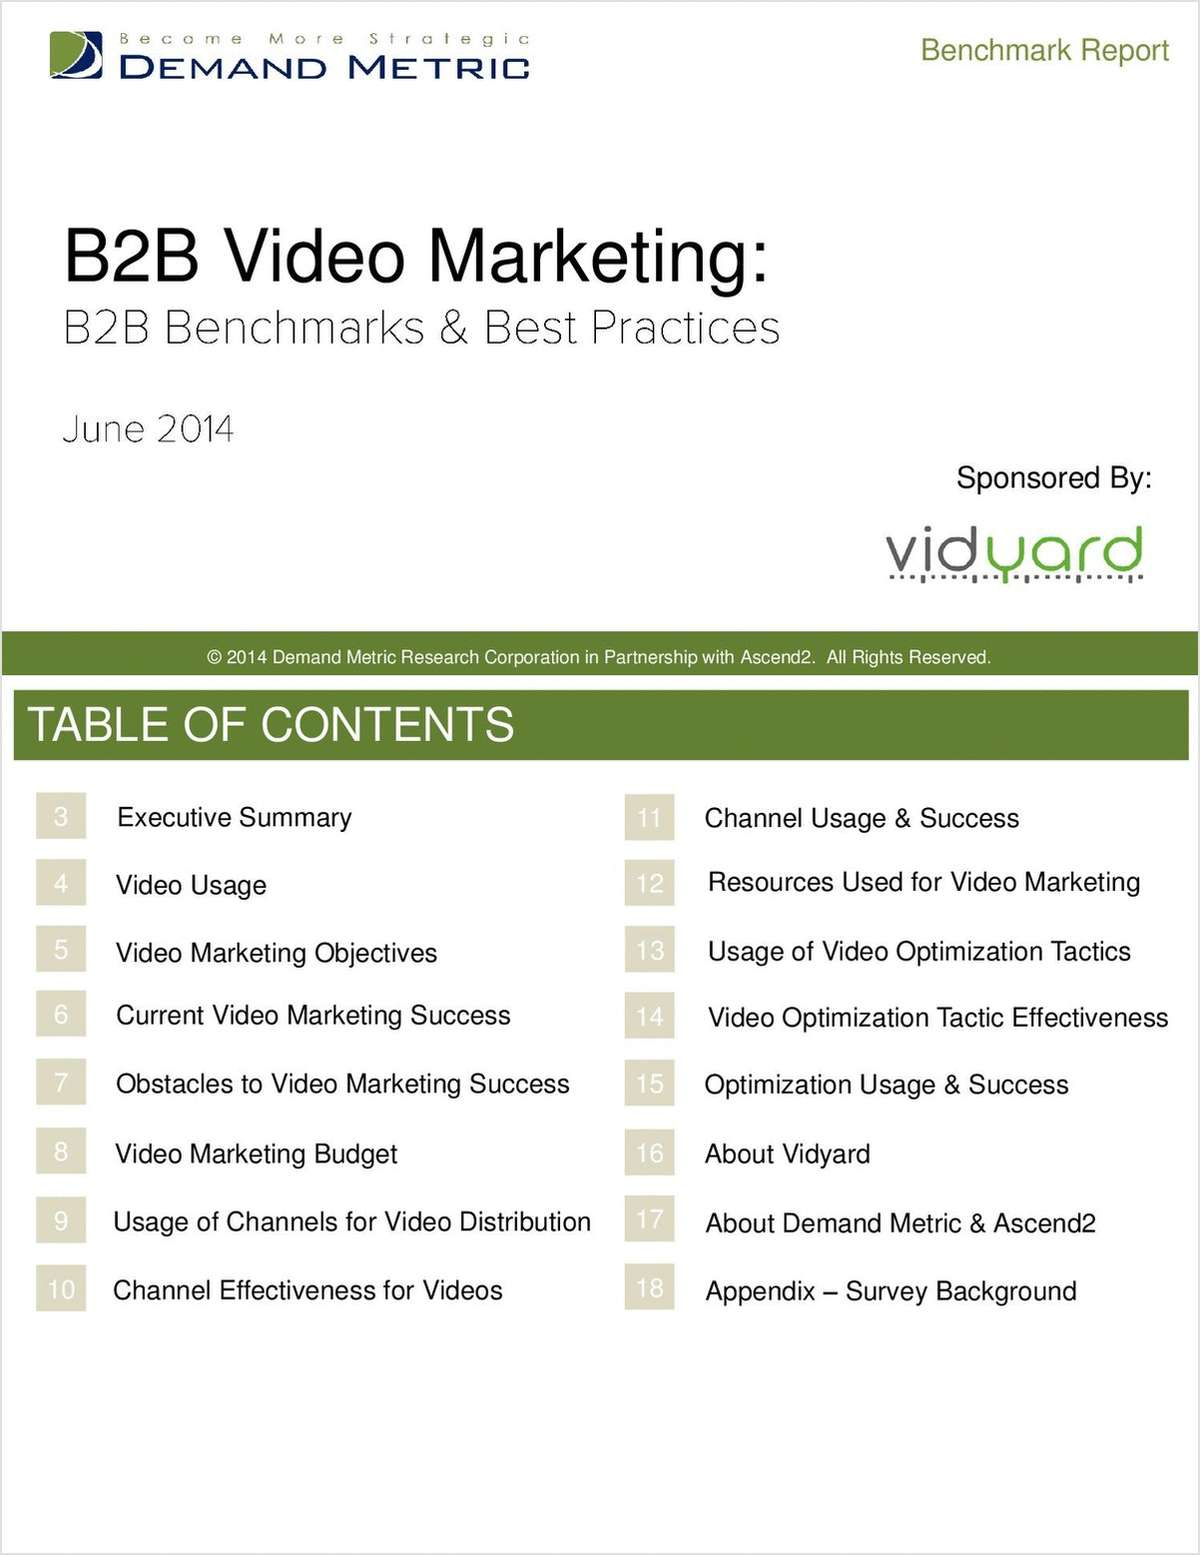 B2B Video Marketing: Benchmarks & Best Practices